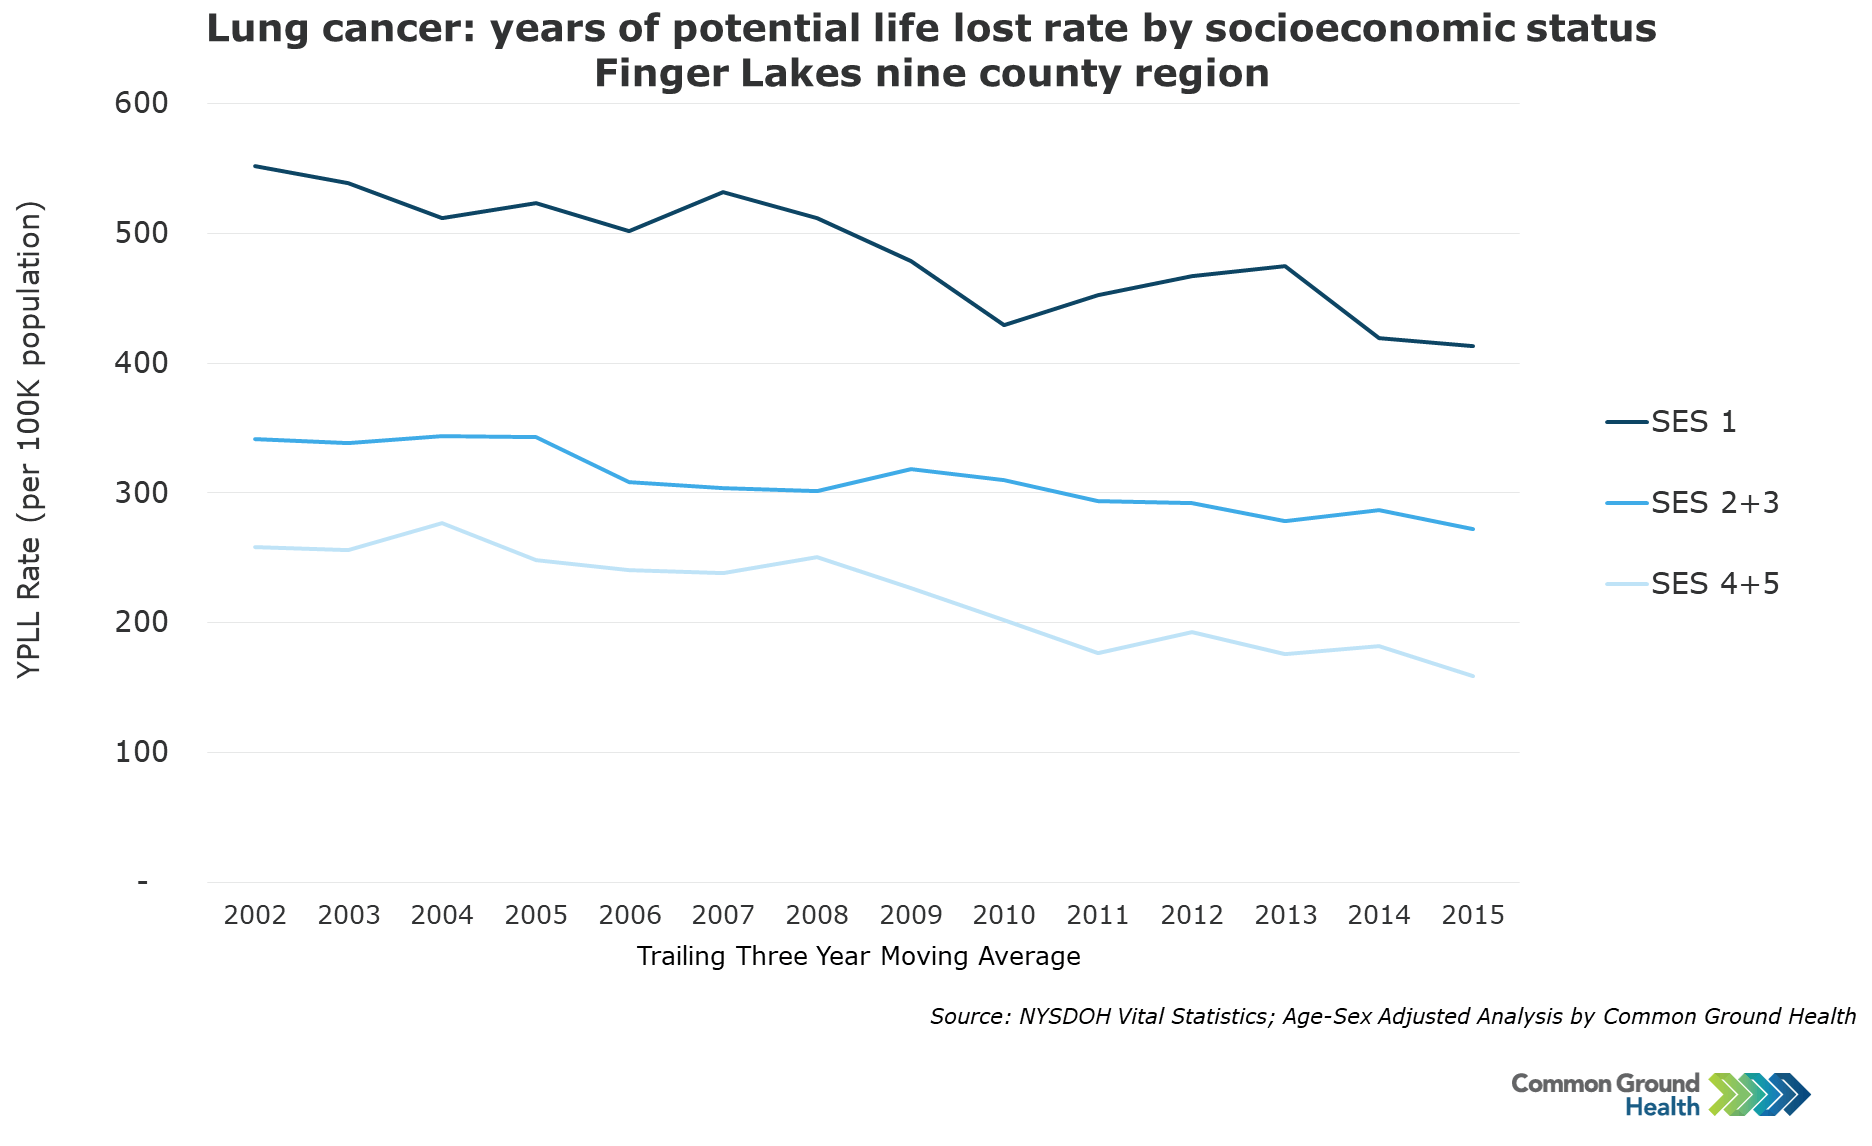 Lung Cancer: Years of Potential Life Lost Rate by Socioeconomic Status